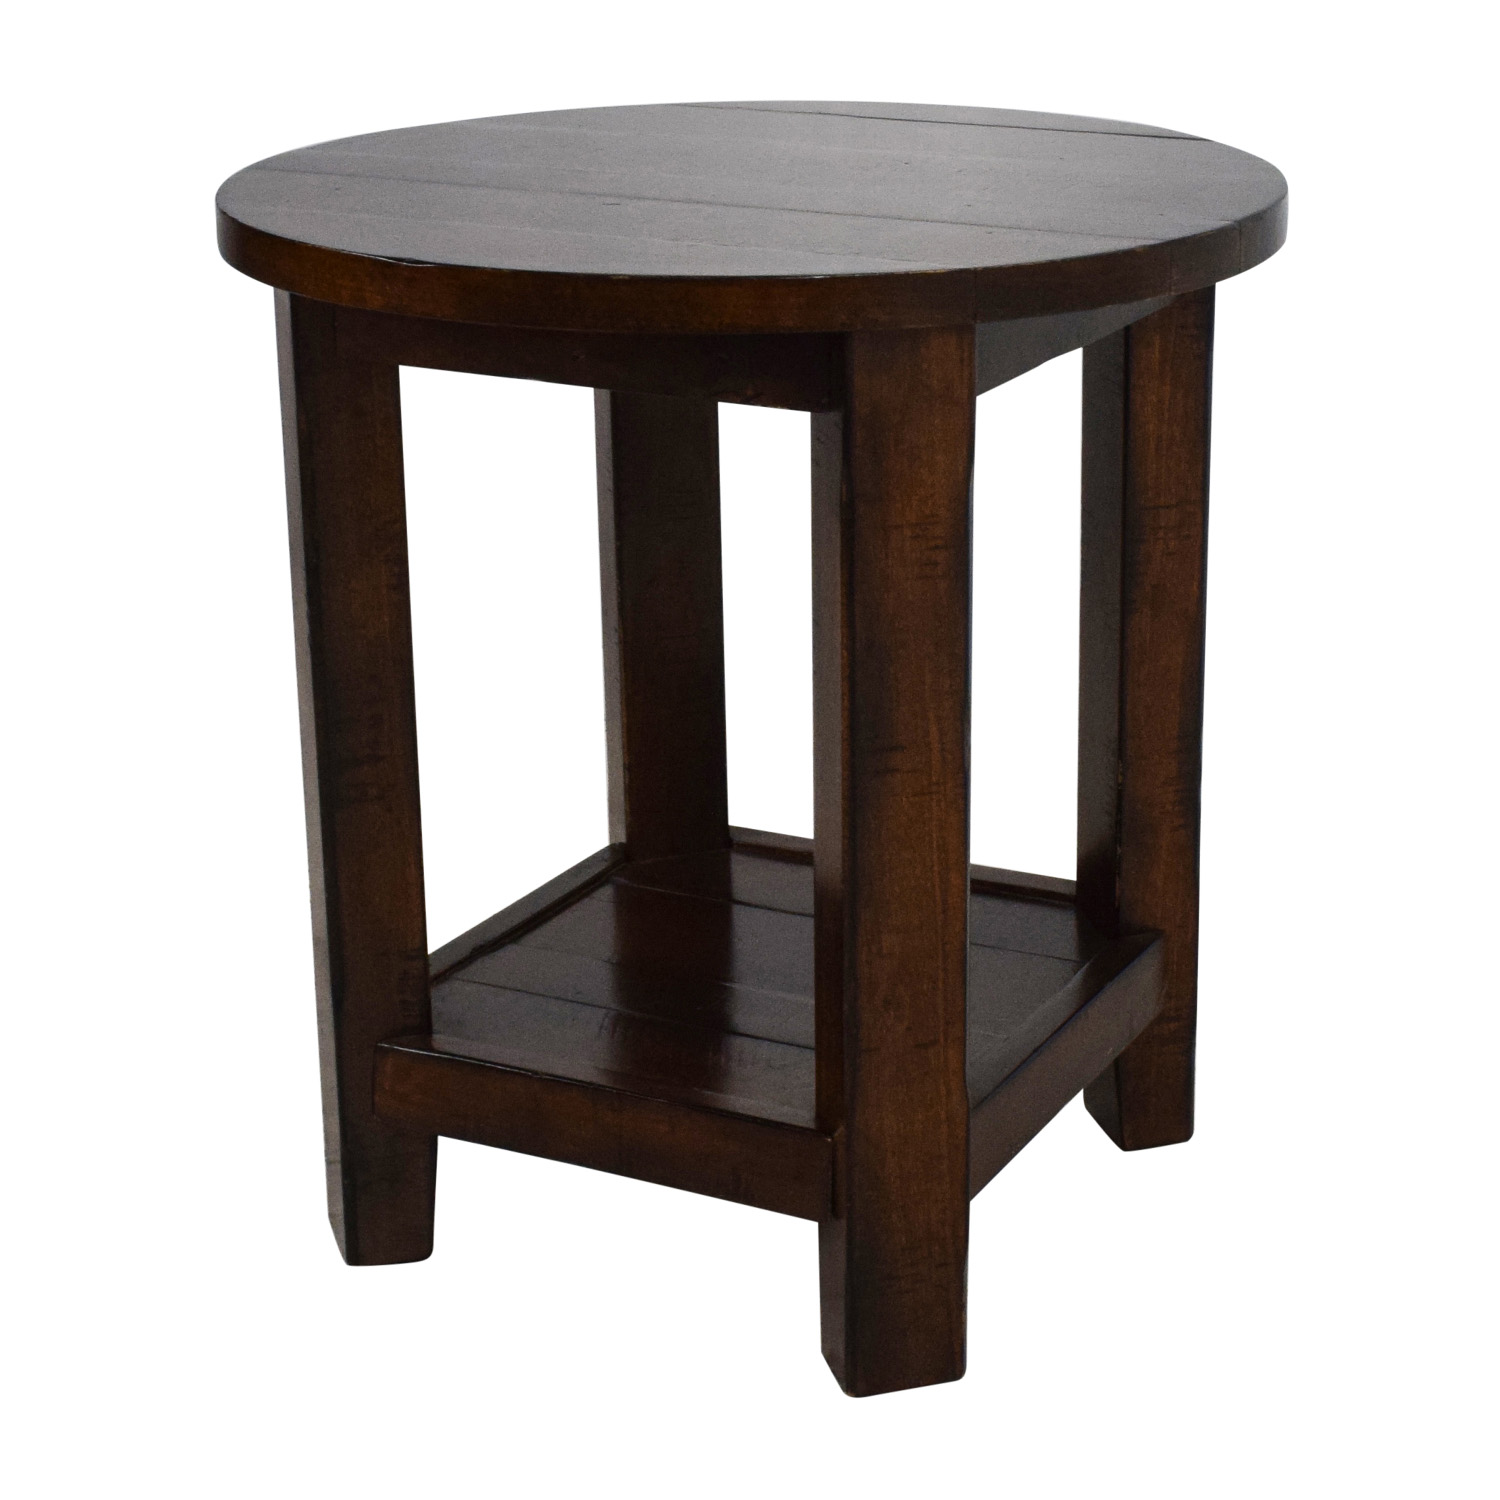 Pottery Barn Wood Table: Pottery Barn Pottery Barn Wooden Side Table / Tables